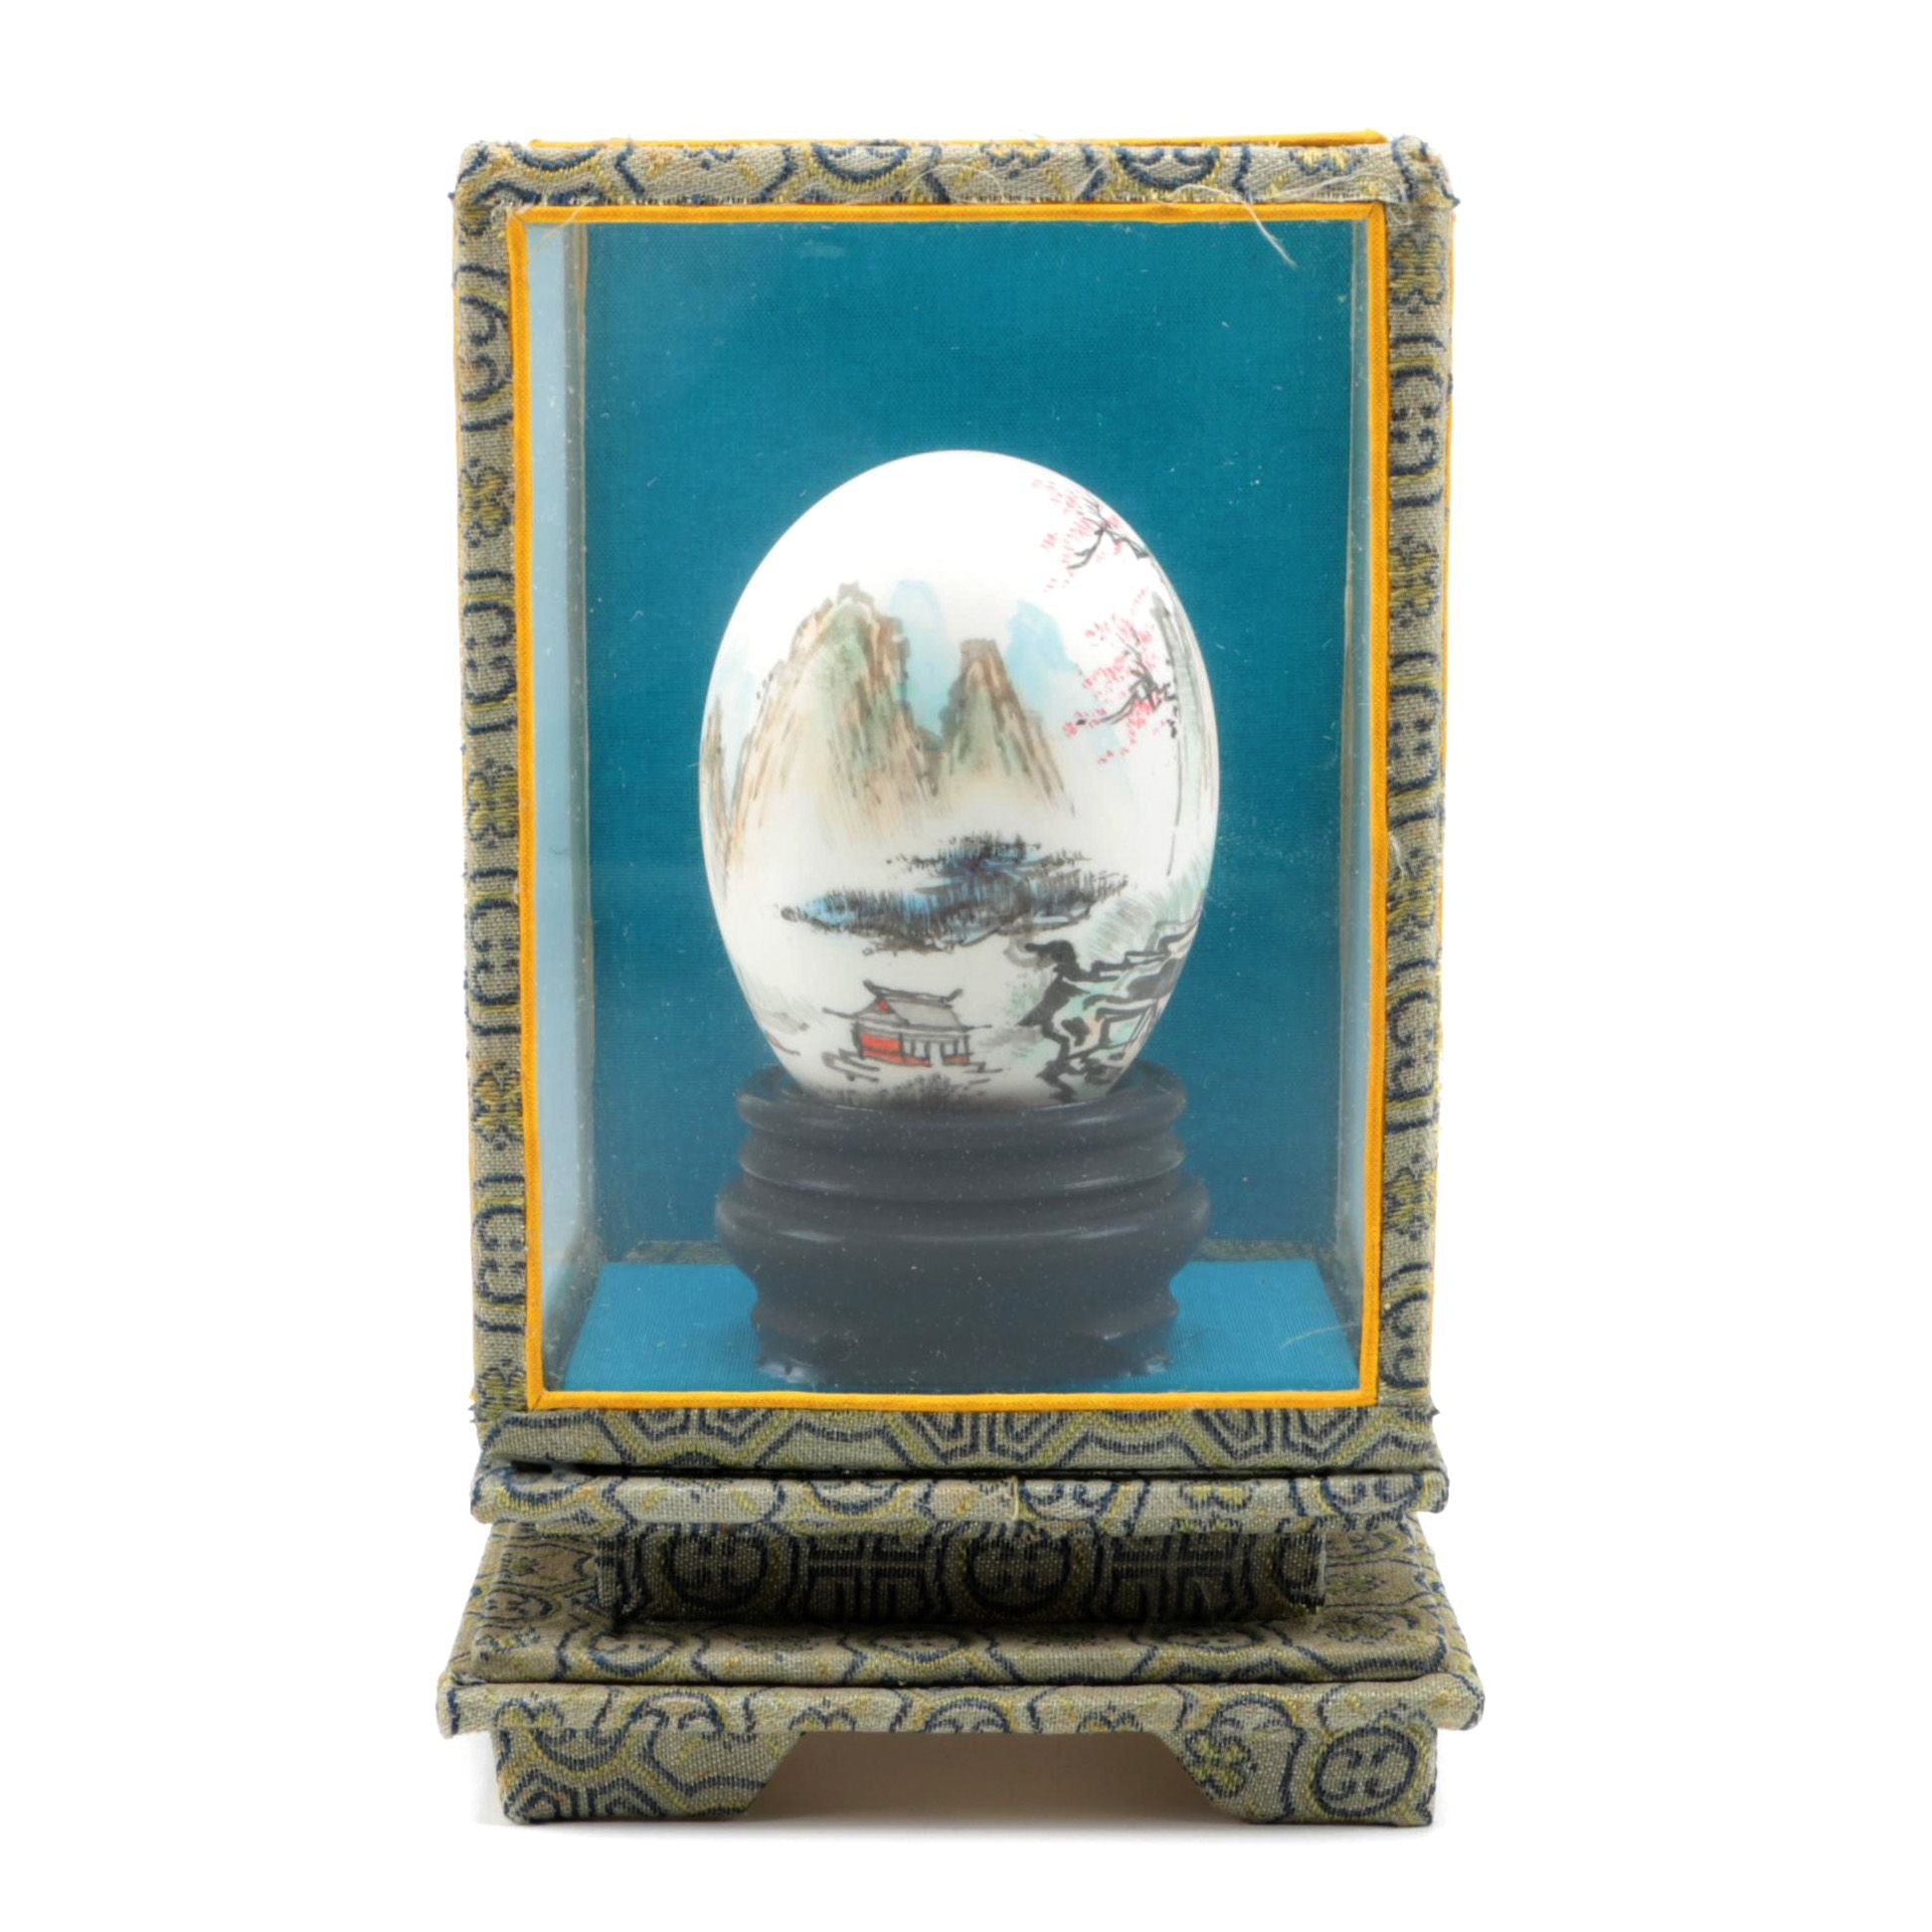 Vintage East Asian Painted Egg and Case